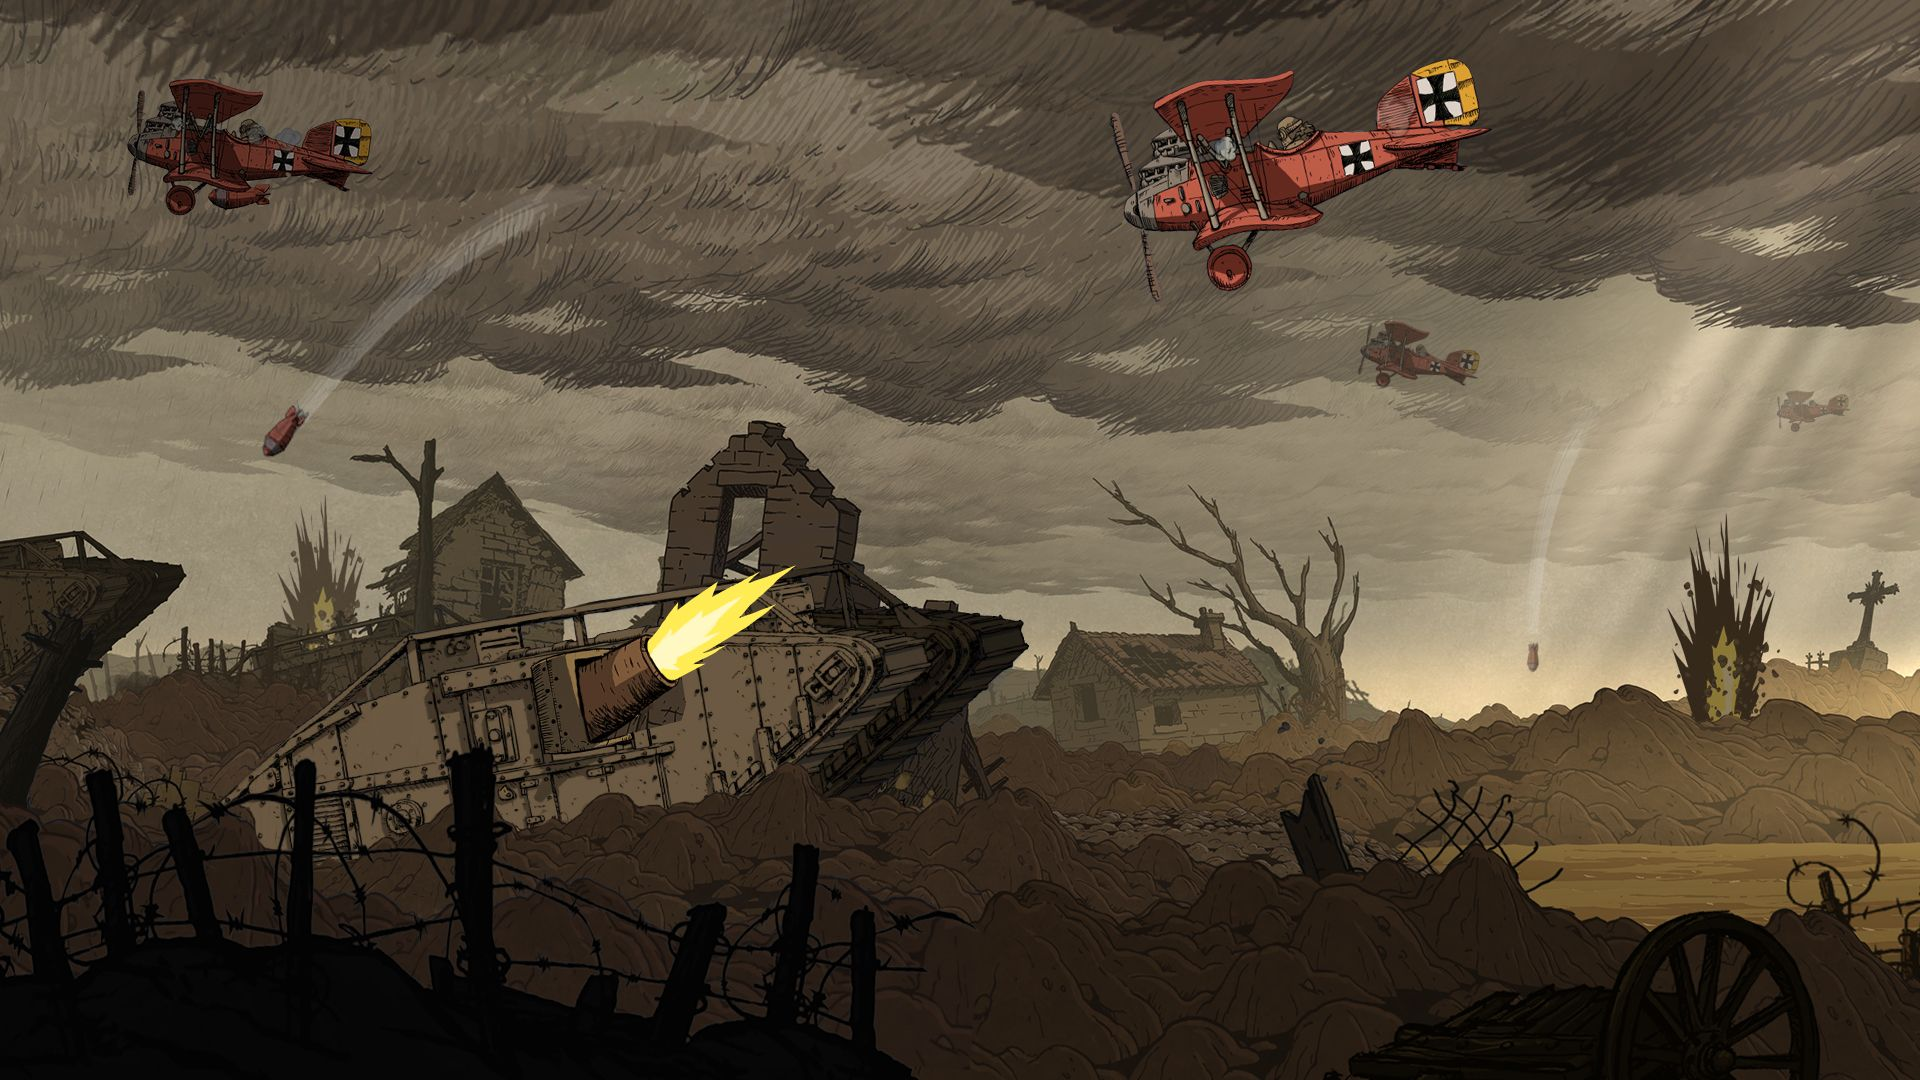 Mines Soup Ladles And War Valiant Hearts Review